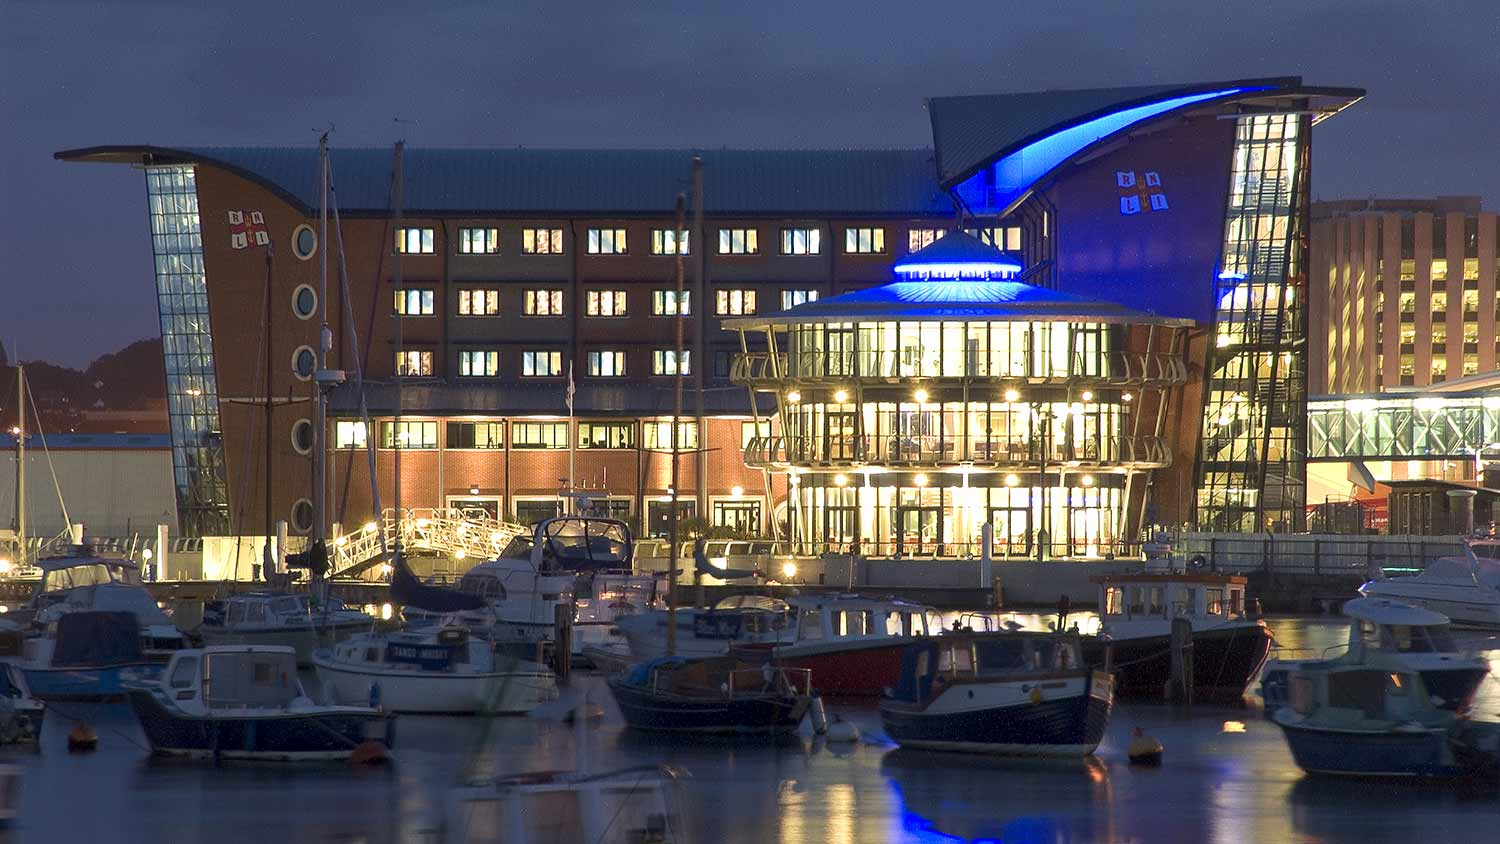 RNLI College at night